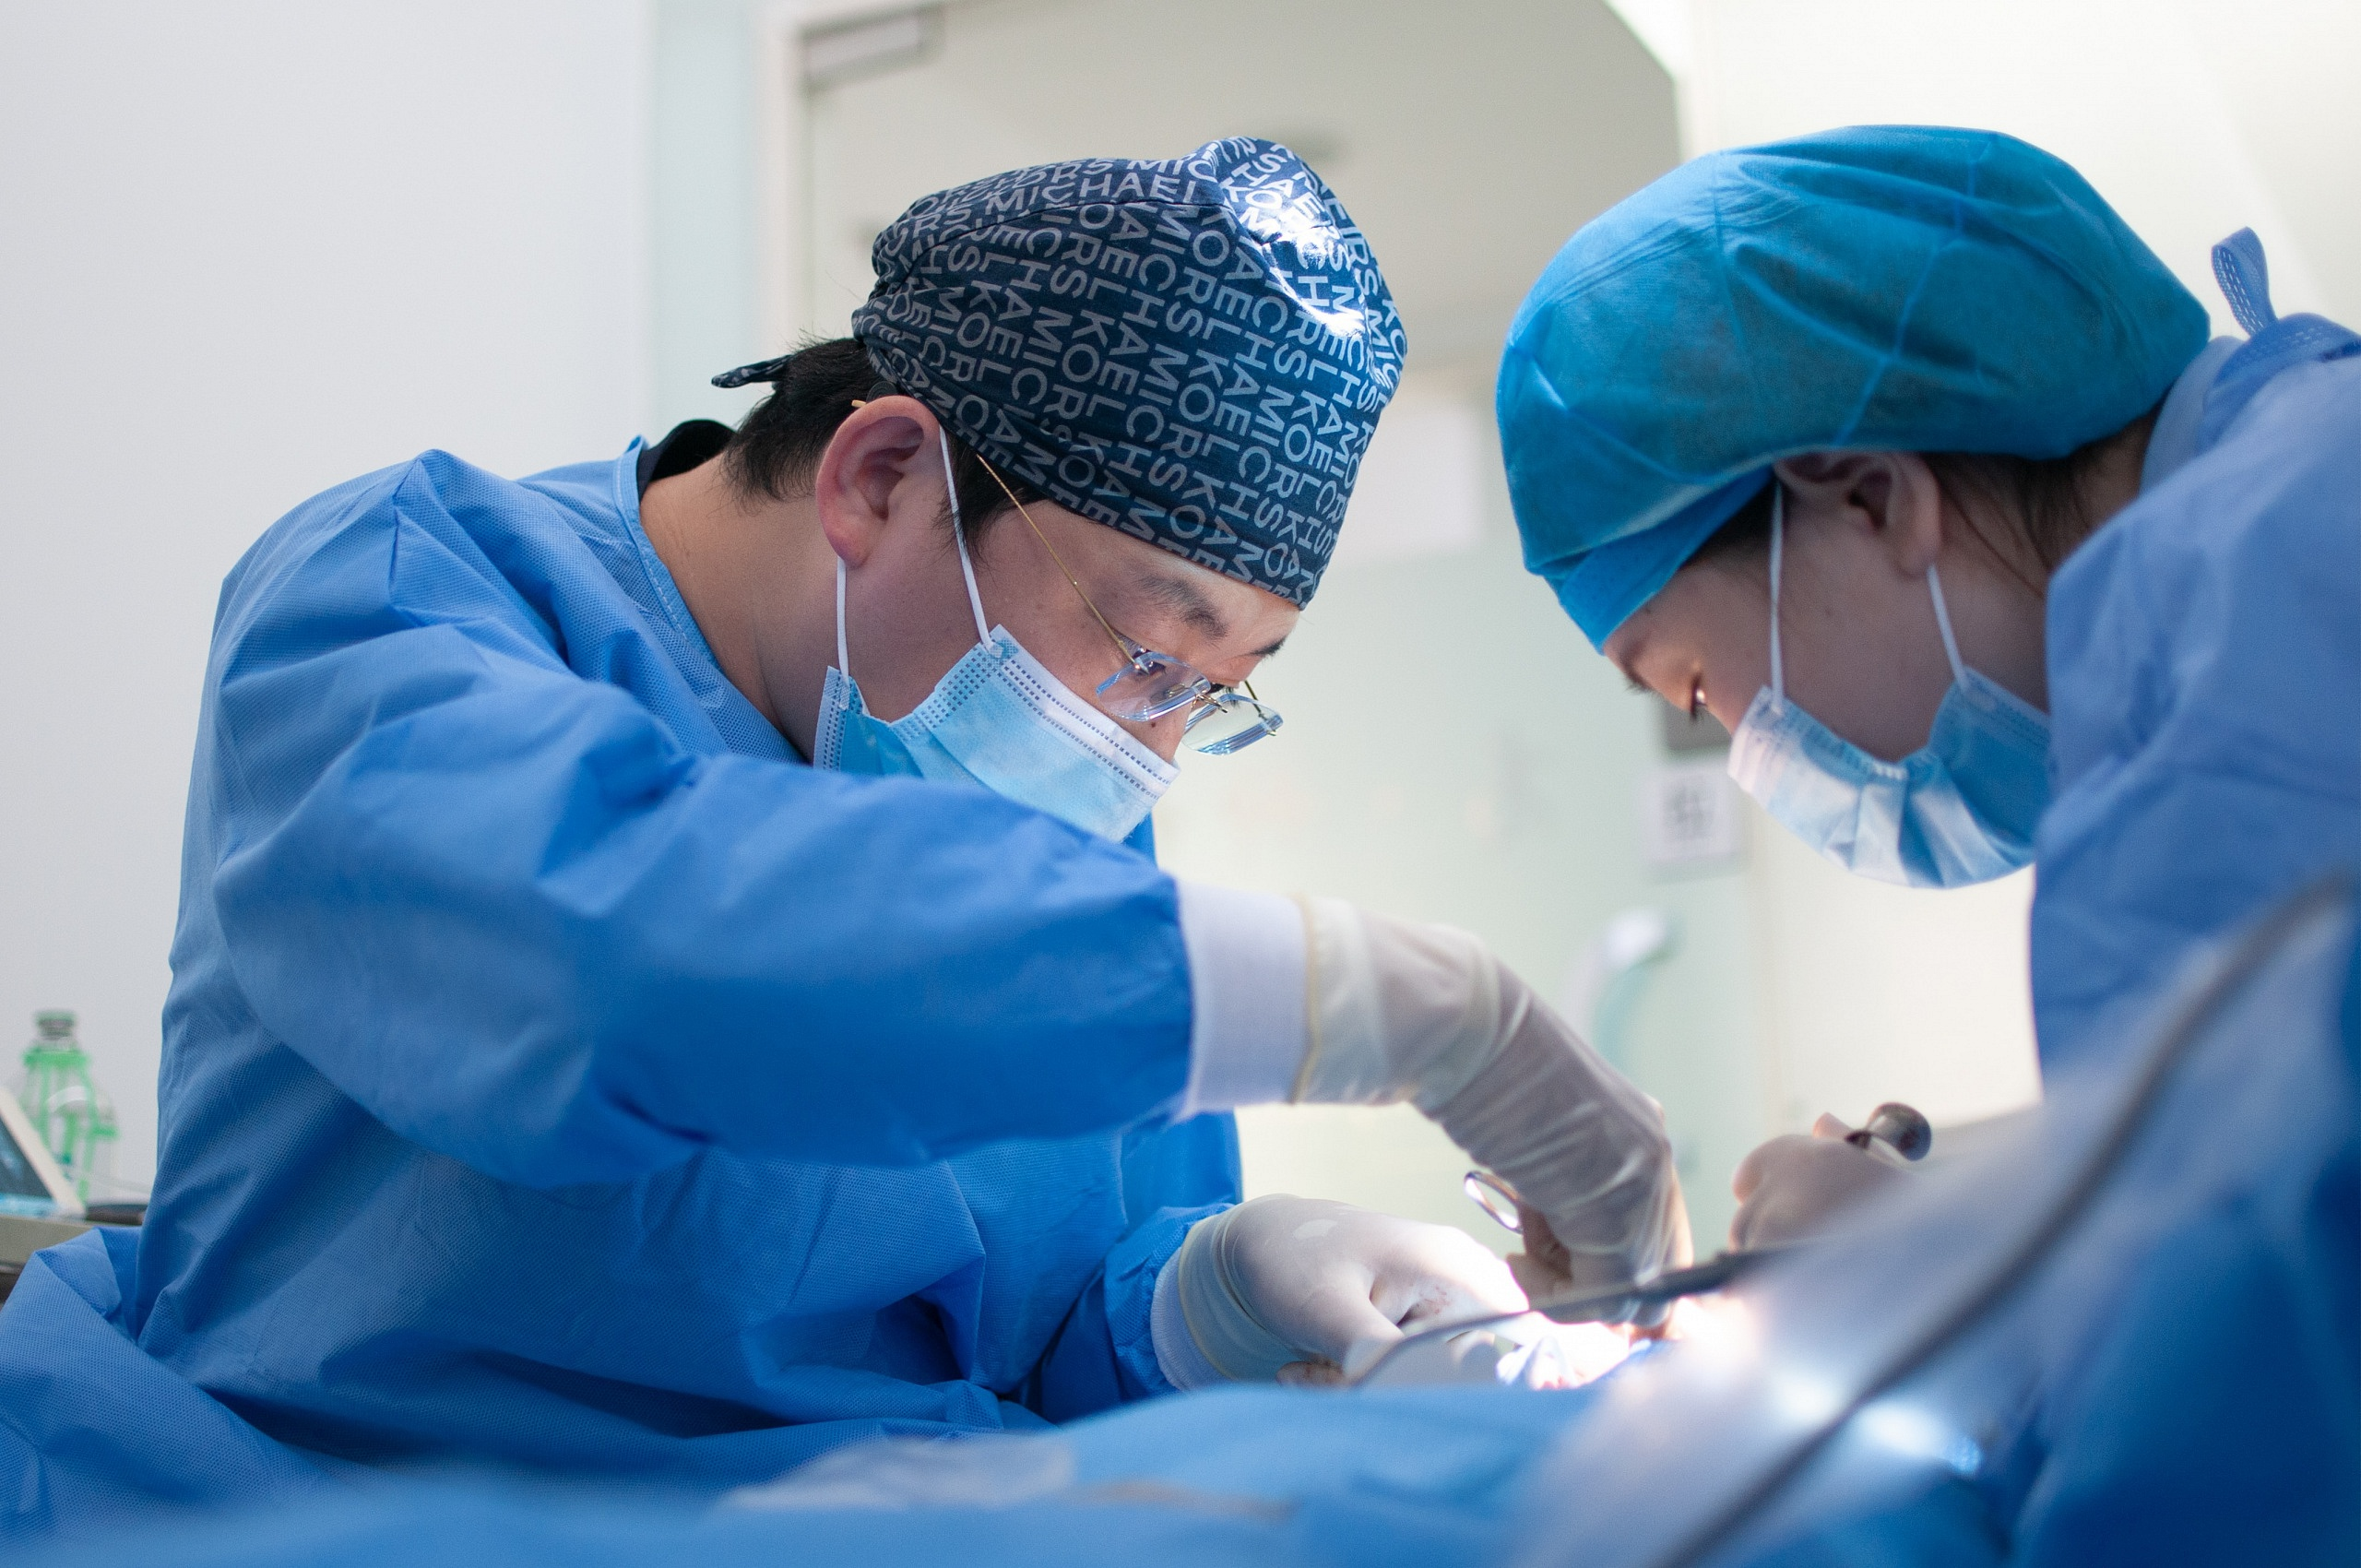 Surgical Castration: a Violation of Human Rights?